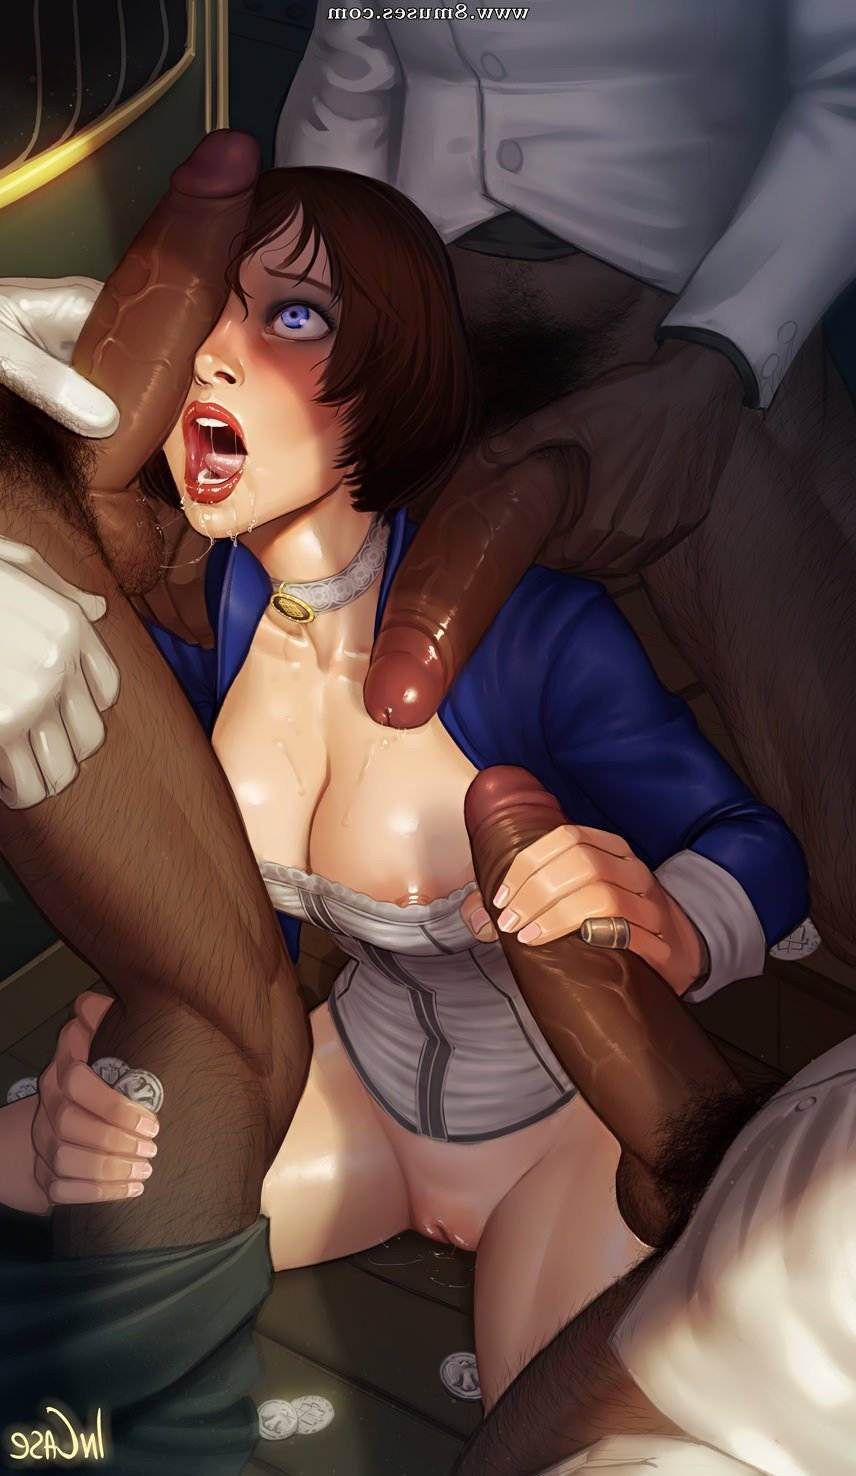 Incase-Comics/Artwork Artwork__8muses_-_Sex_and_Porn_Comics_277.jpg